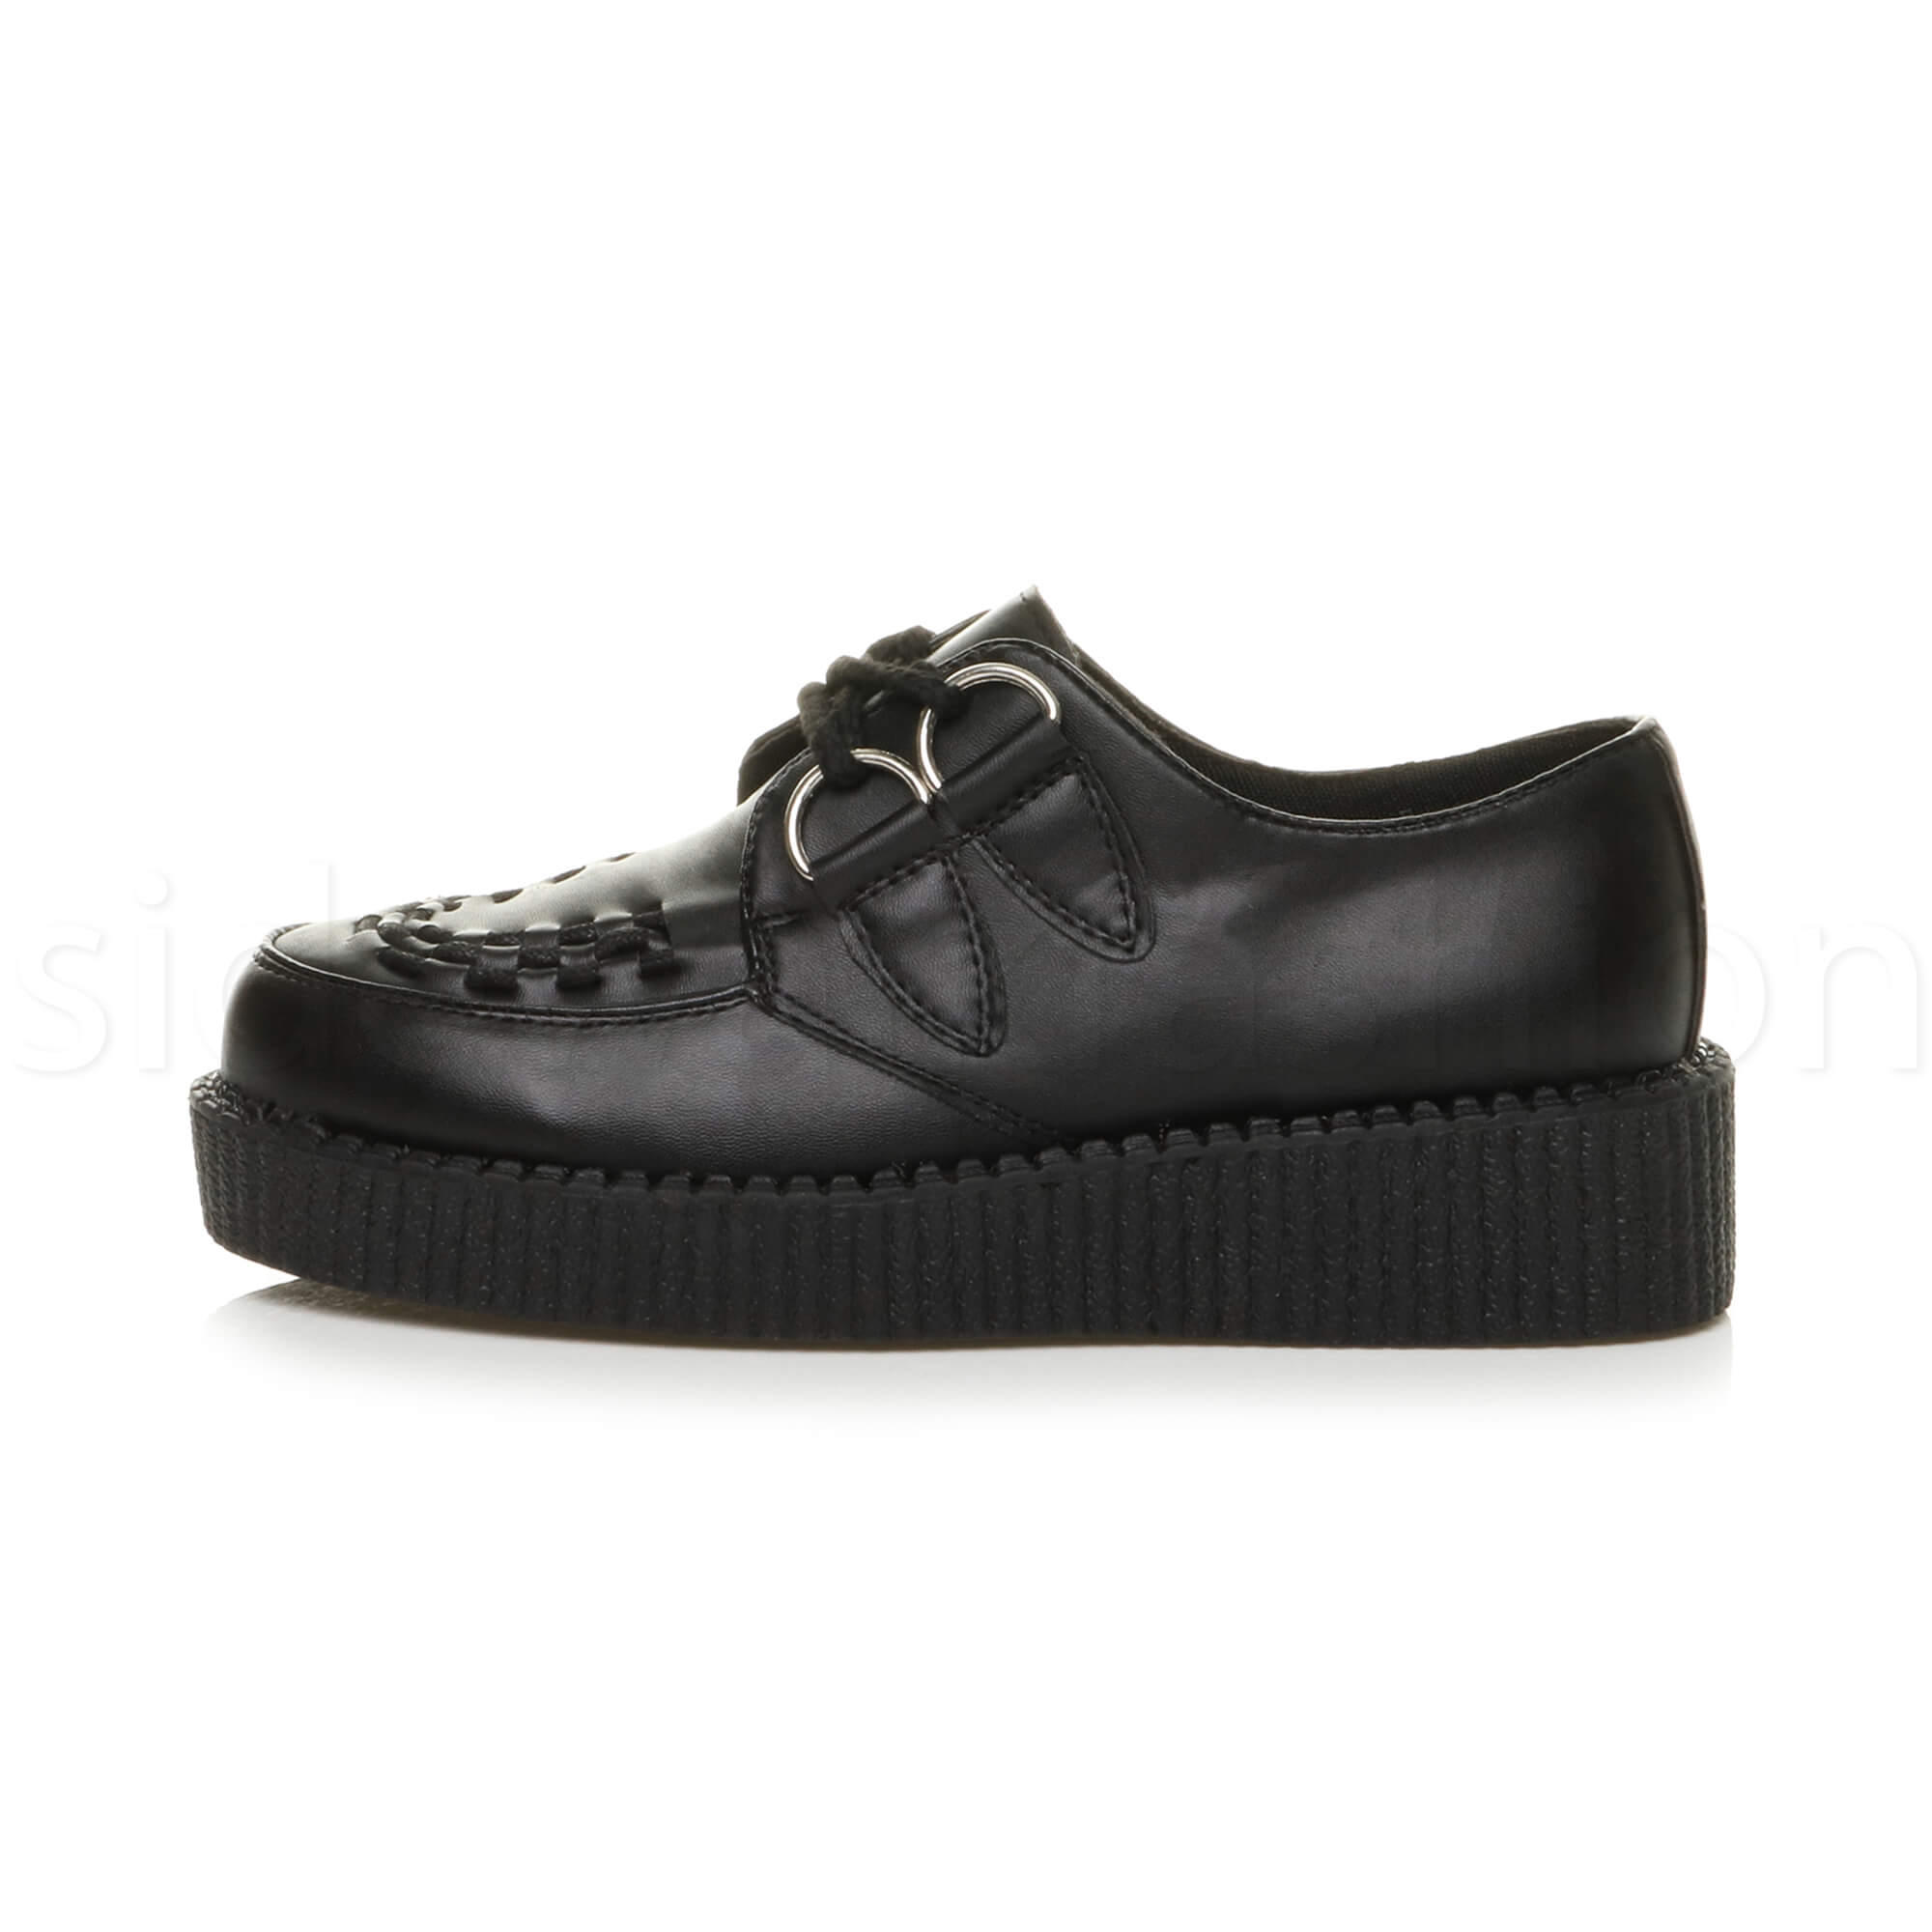 Womens-ladies-flat-platform-wedge-lace-up-goth-punk-creepers-shoes-boots-size miniatura 3